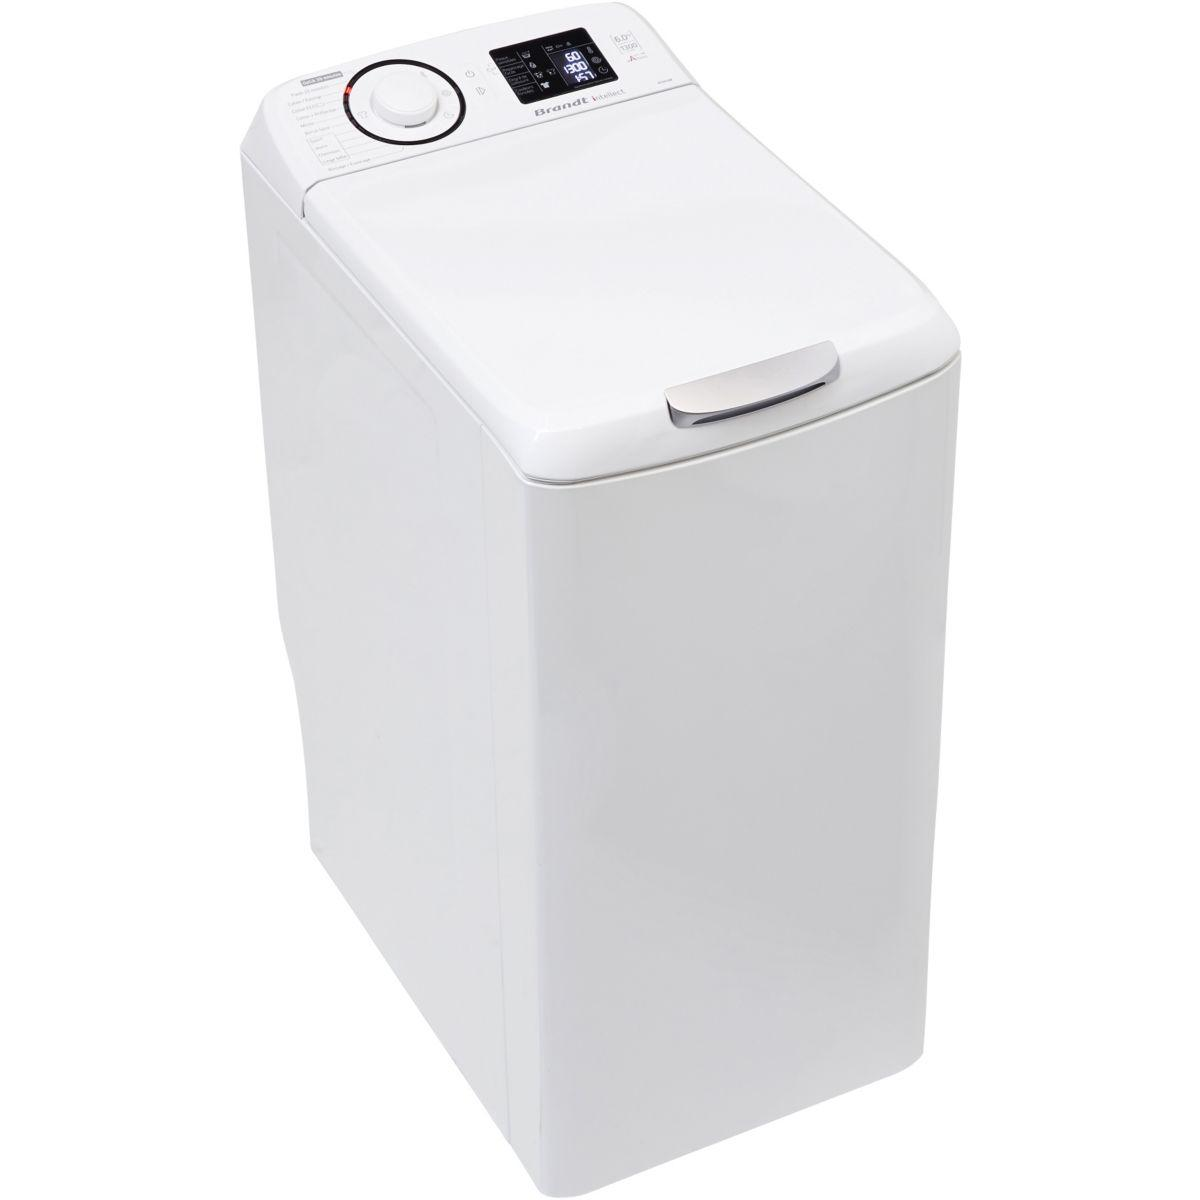 Lave-linge top brandt bt603m - 15% de remise imm�diate avec le code : wd15 (photo)